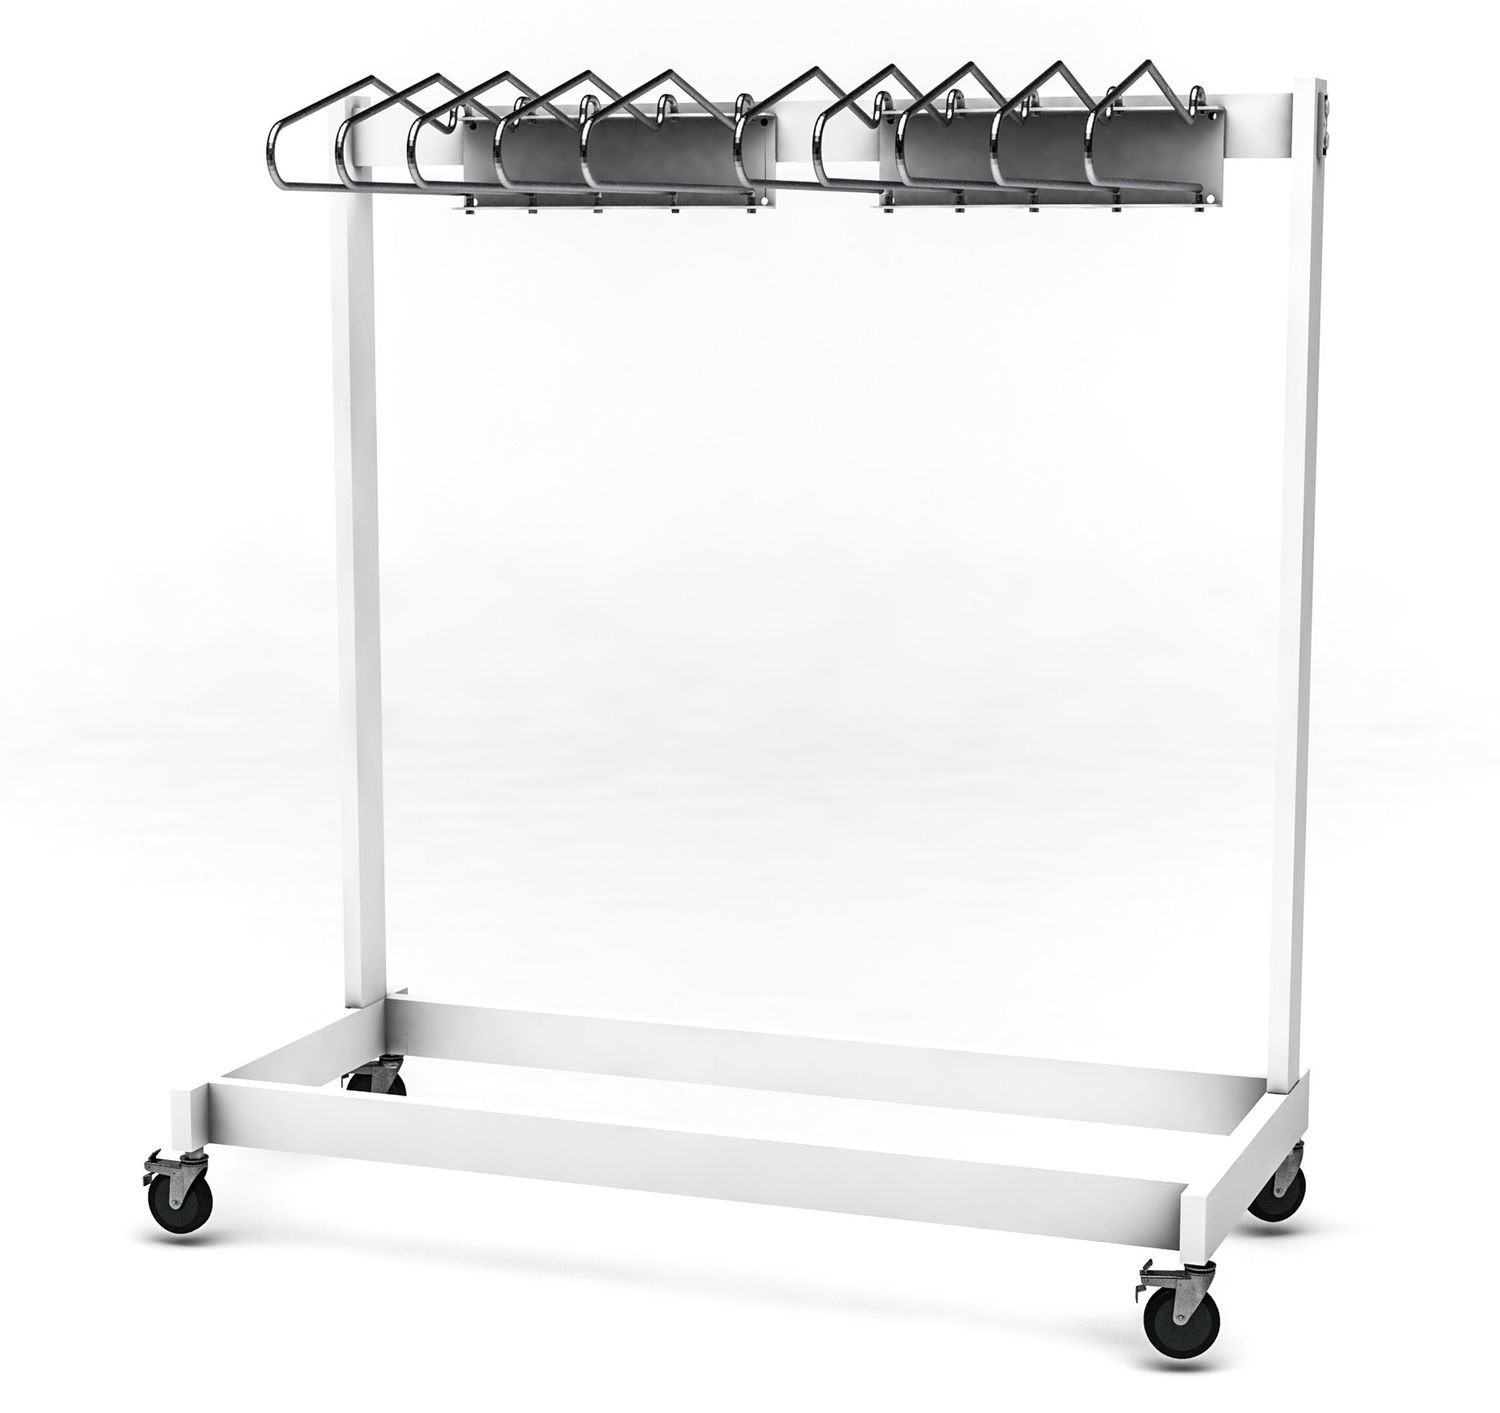 Garment Style Mobile 10 Arm Apron Rack, #AR10-VALET-S